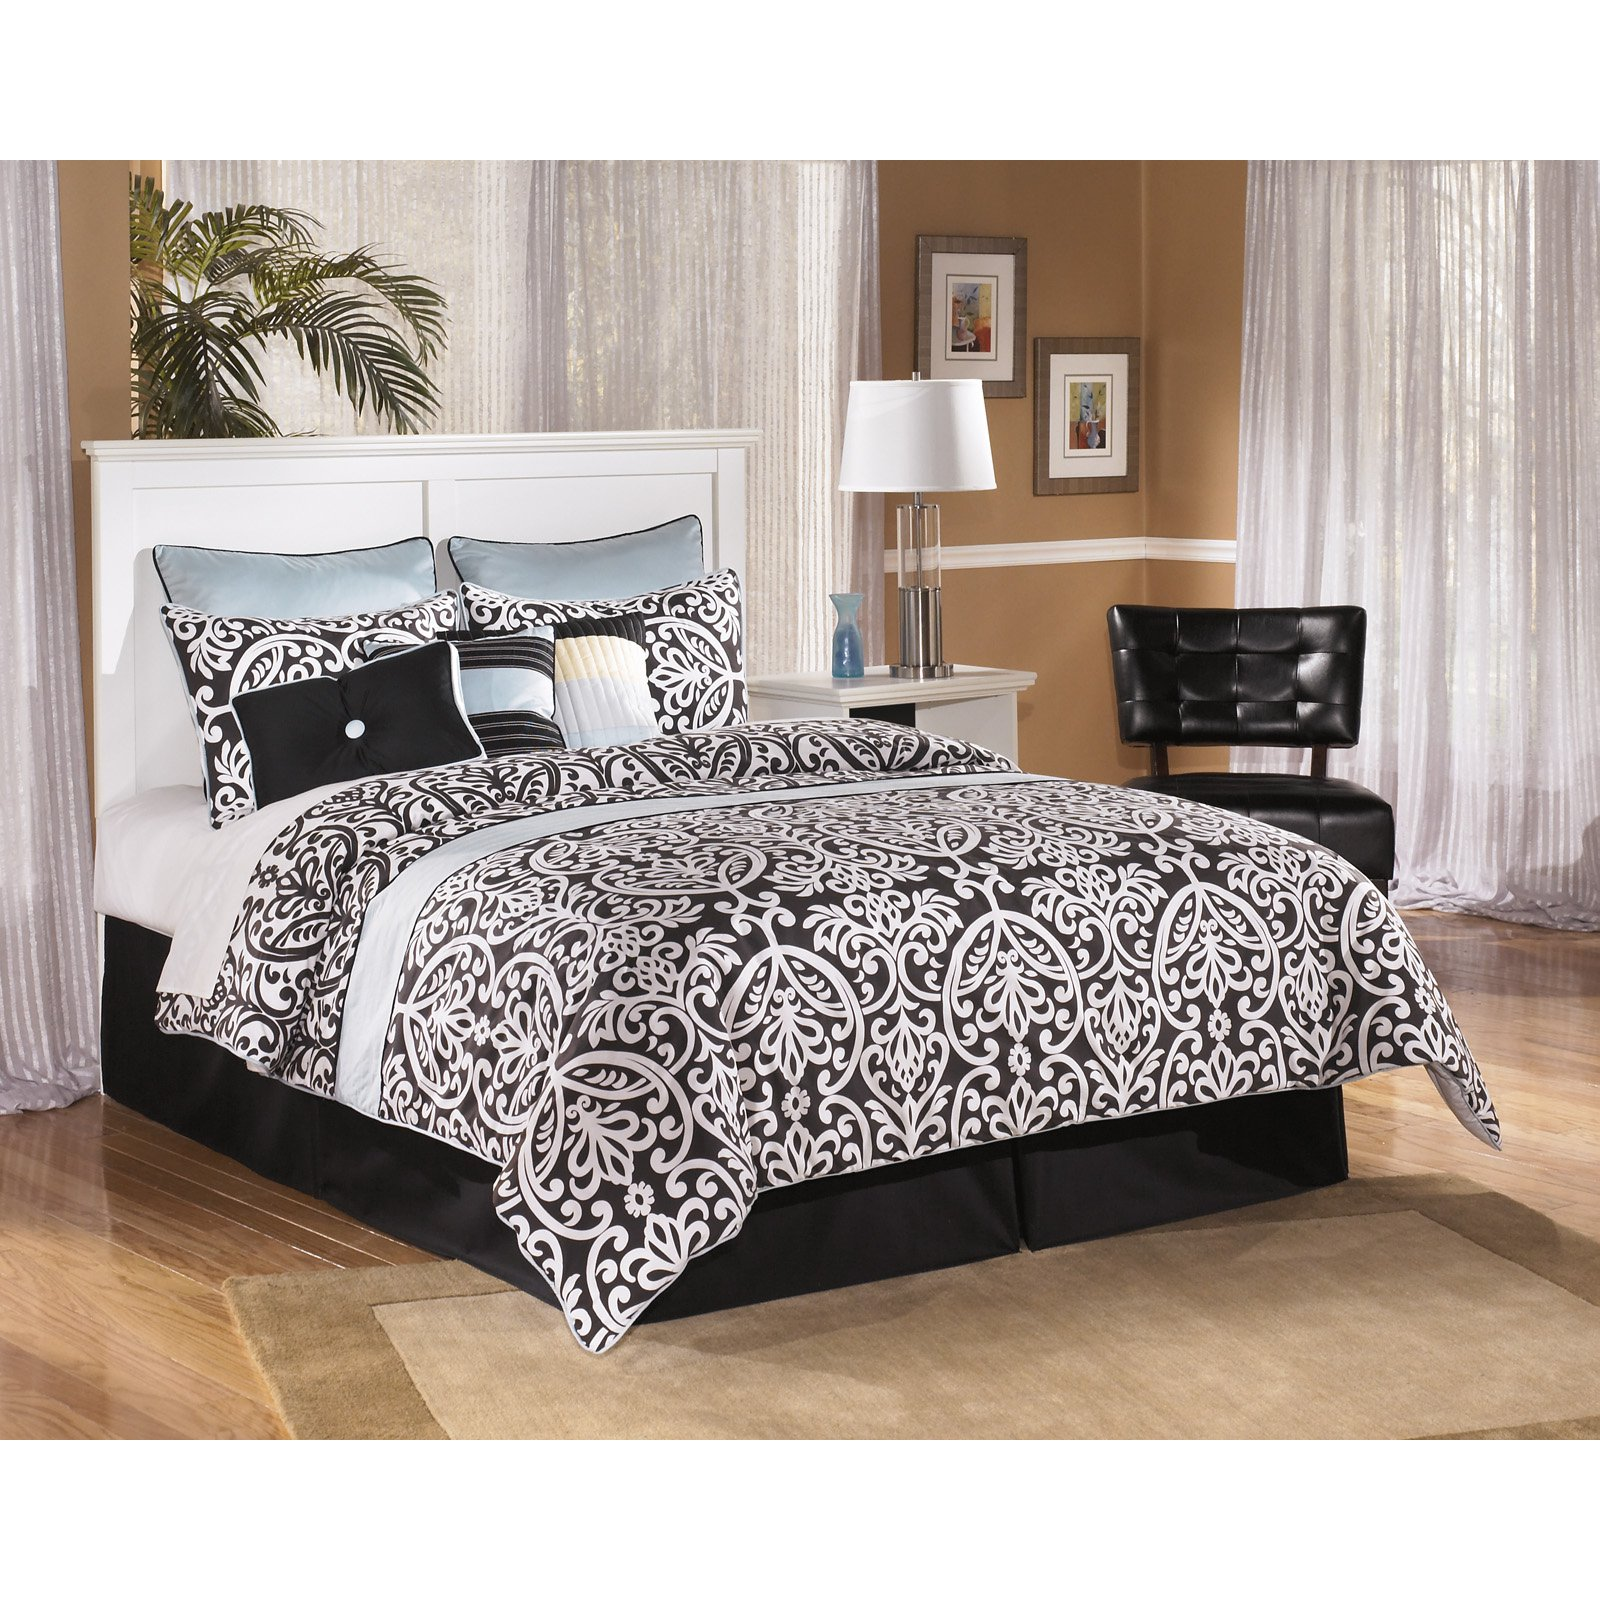 Signature Design by Ashley Bostwick Shoals Wooden Panel Headboard